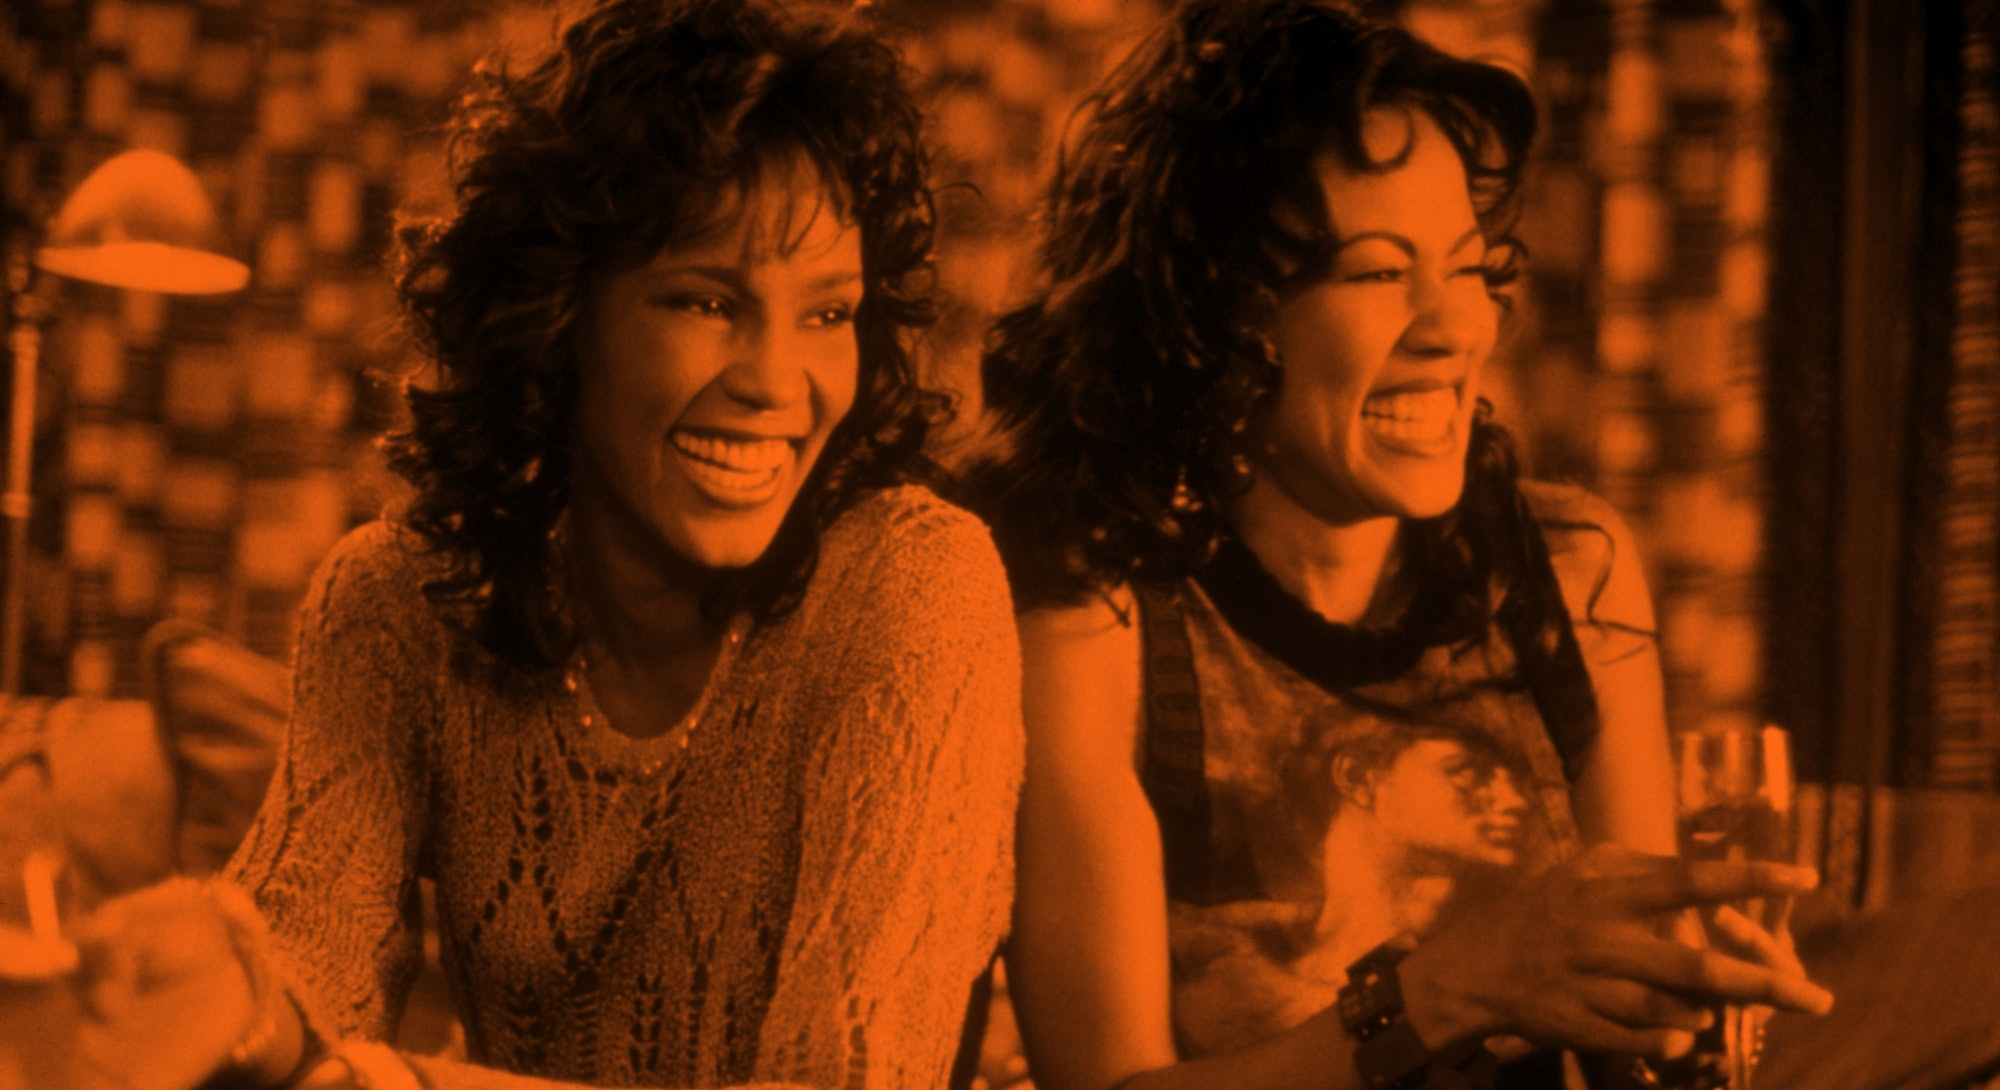 WHITNEY HOUSTON and LELA ROCHON in Waiting To Exhale